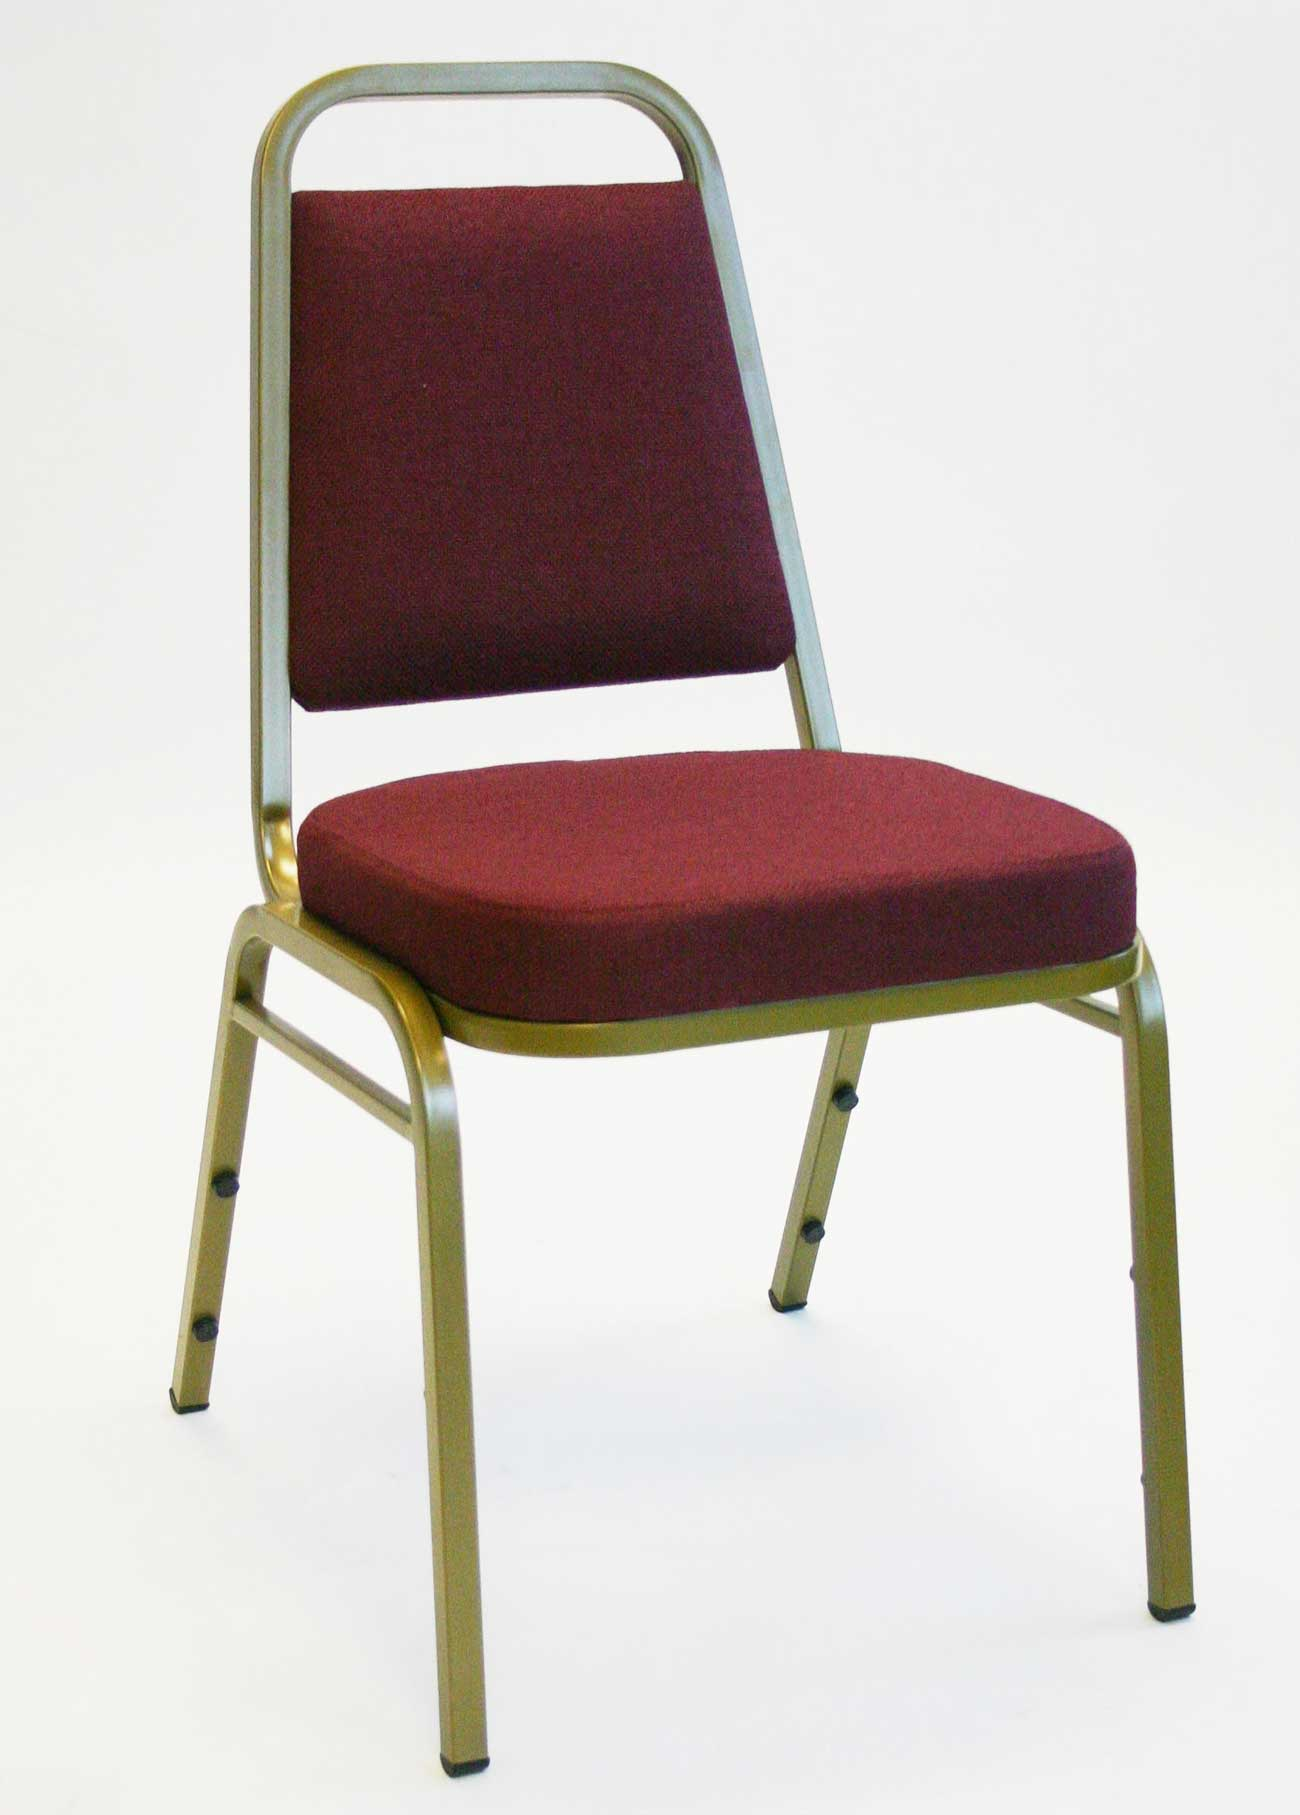 Lucite Folding Chairs Lucite Folding Chairs For Perfect Comfort